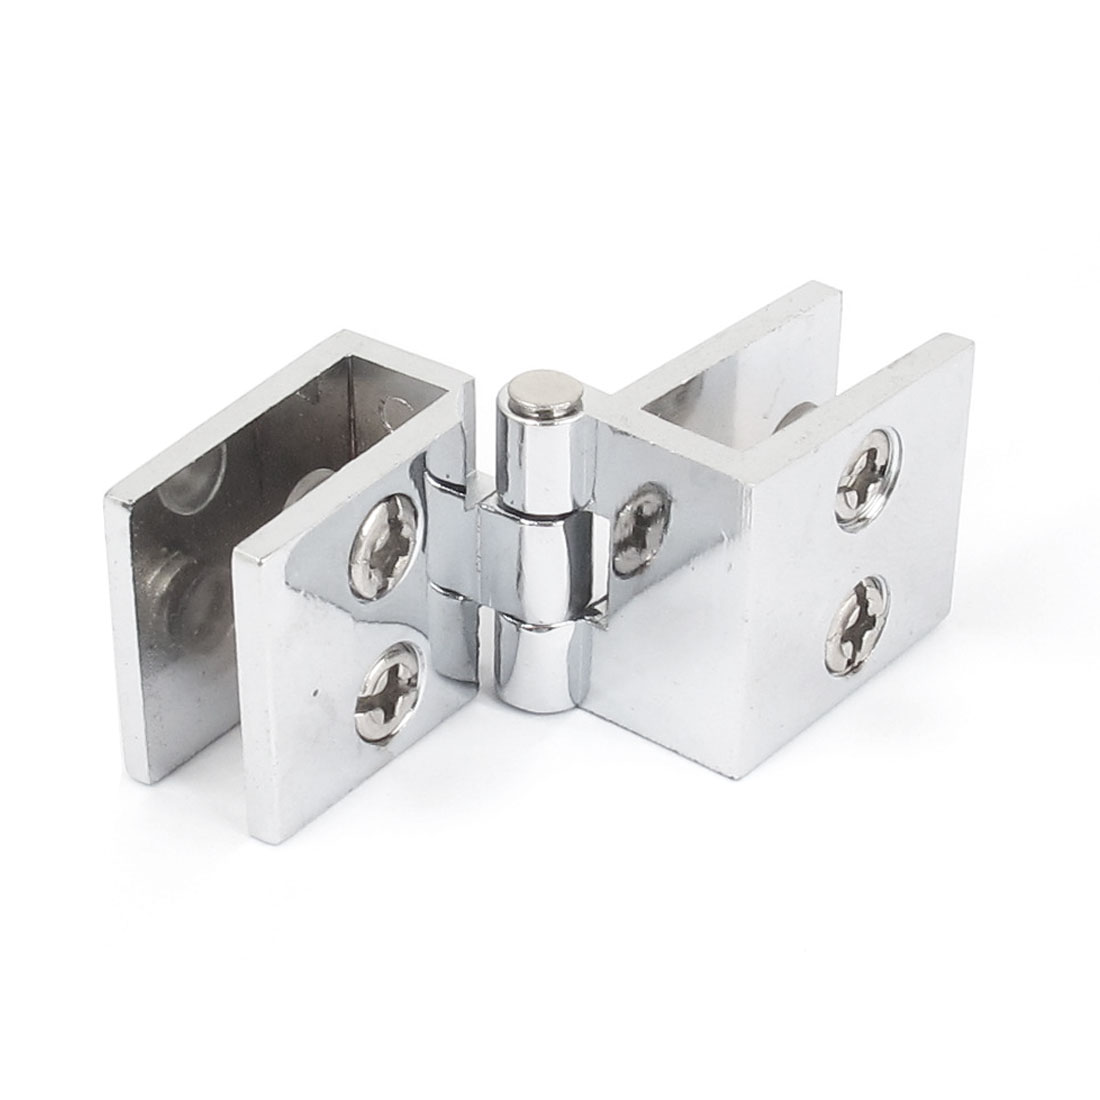 5mm-8mm Adjustable Collapsible Rectangle Clamp Clip Door Hinge for Bathroom Shower